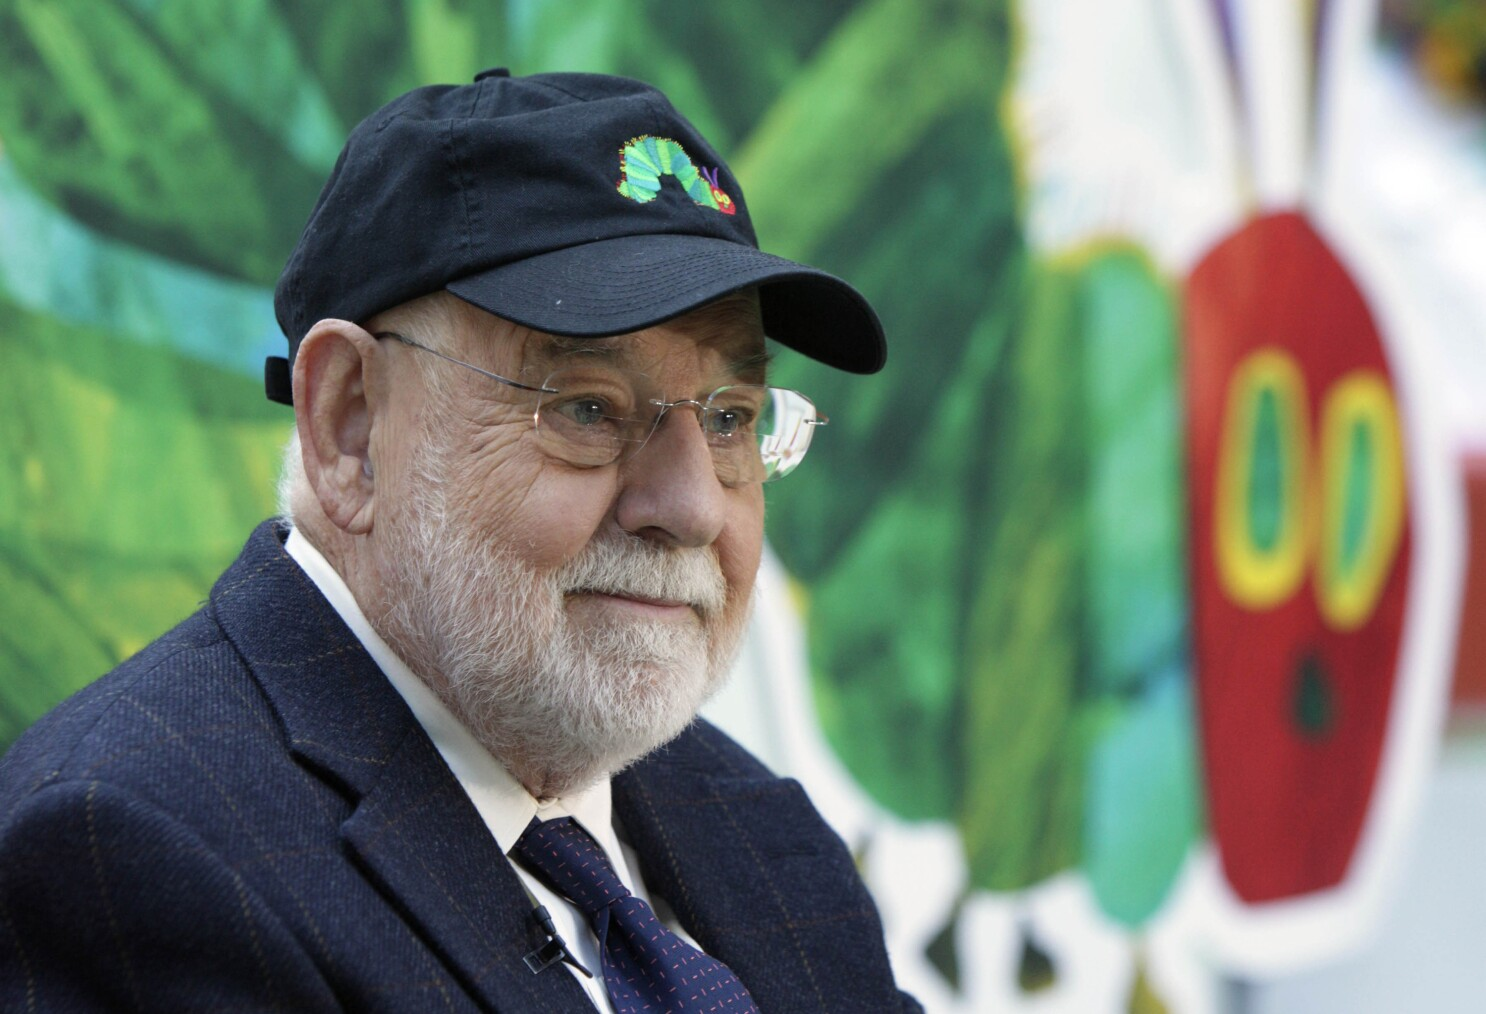 """Eric Carle, Author and Illustrator of """"The Very Hungry Caterpillar"""" and Other Children's Books, Dies at 91"""